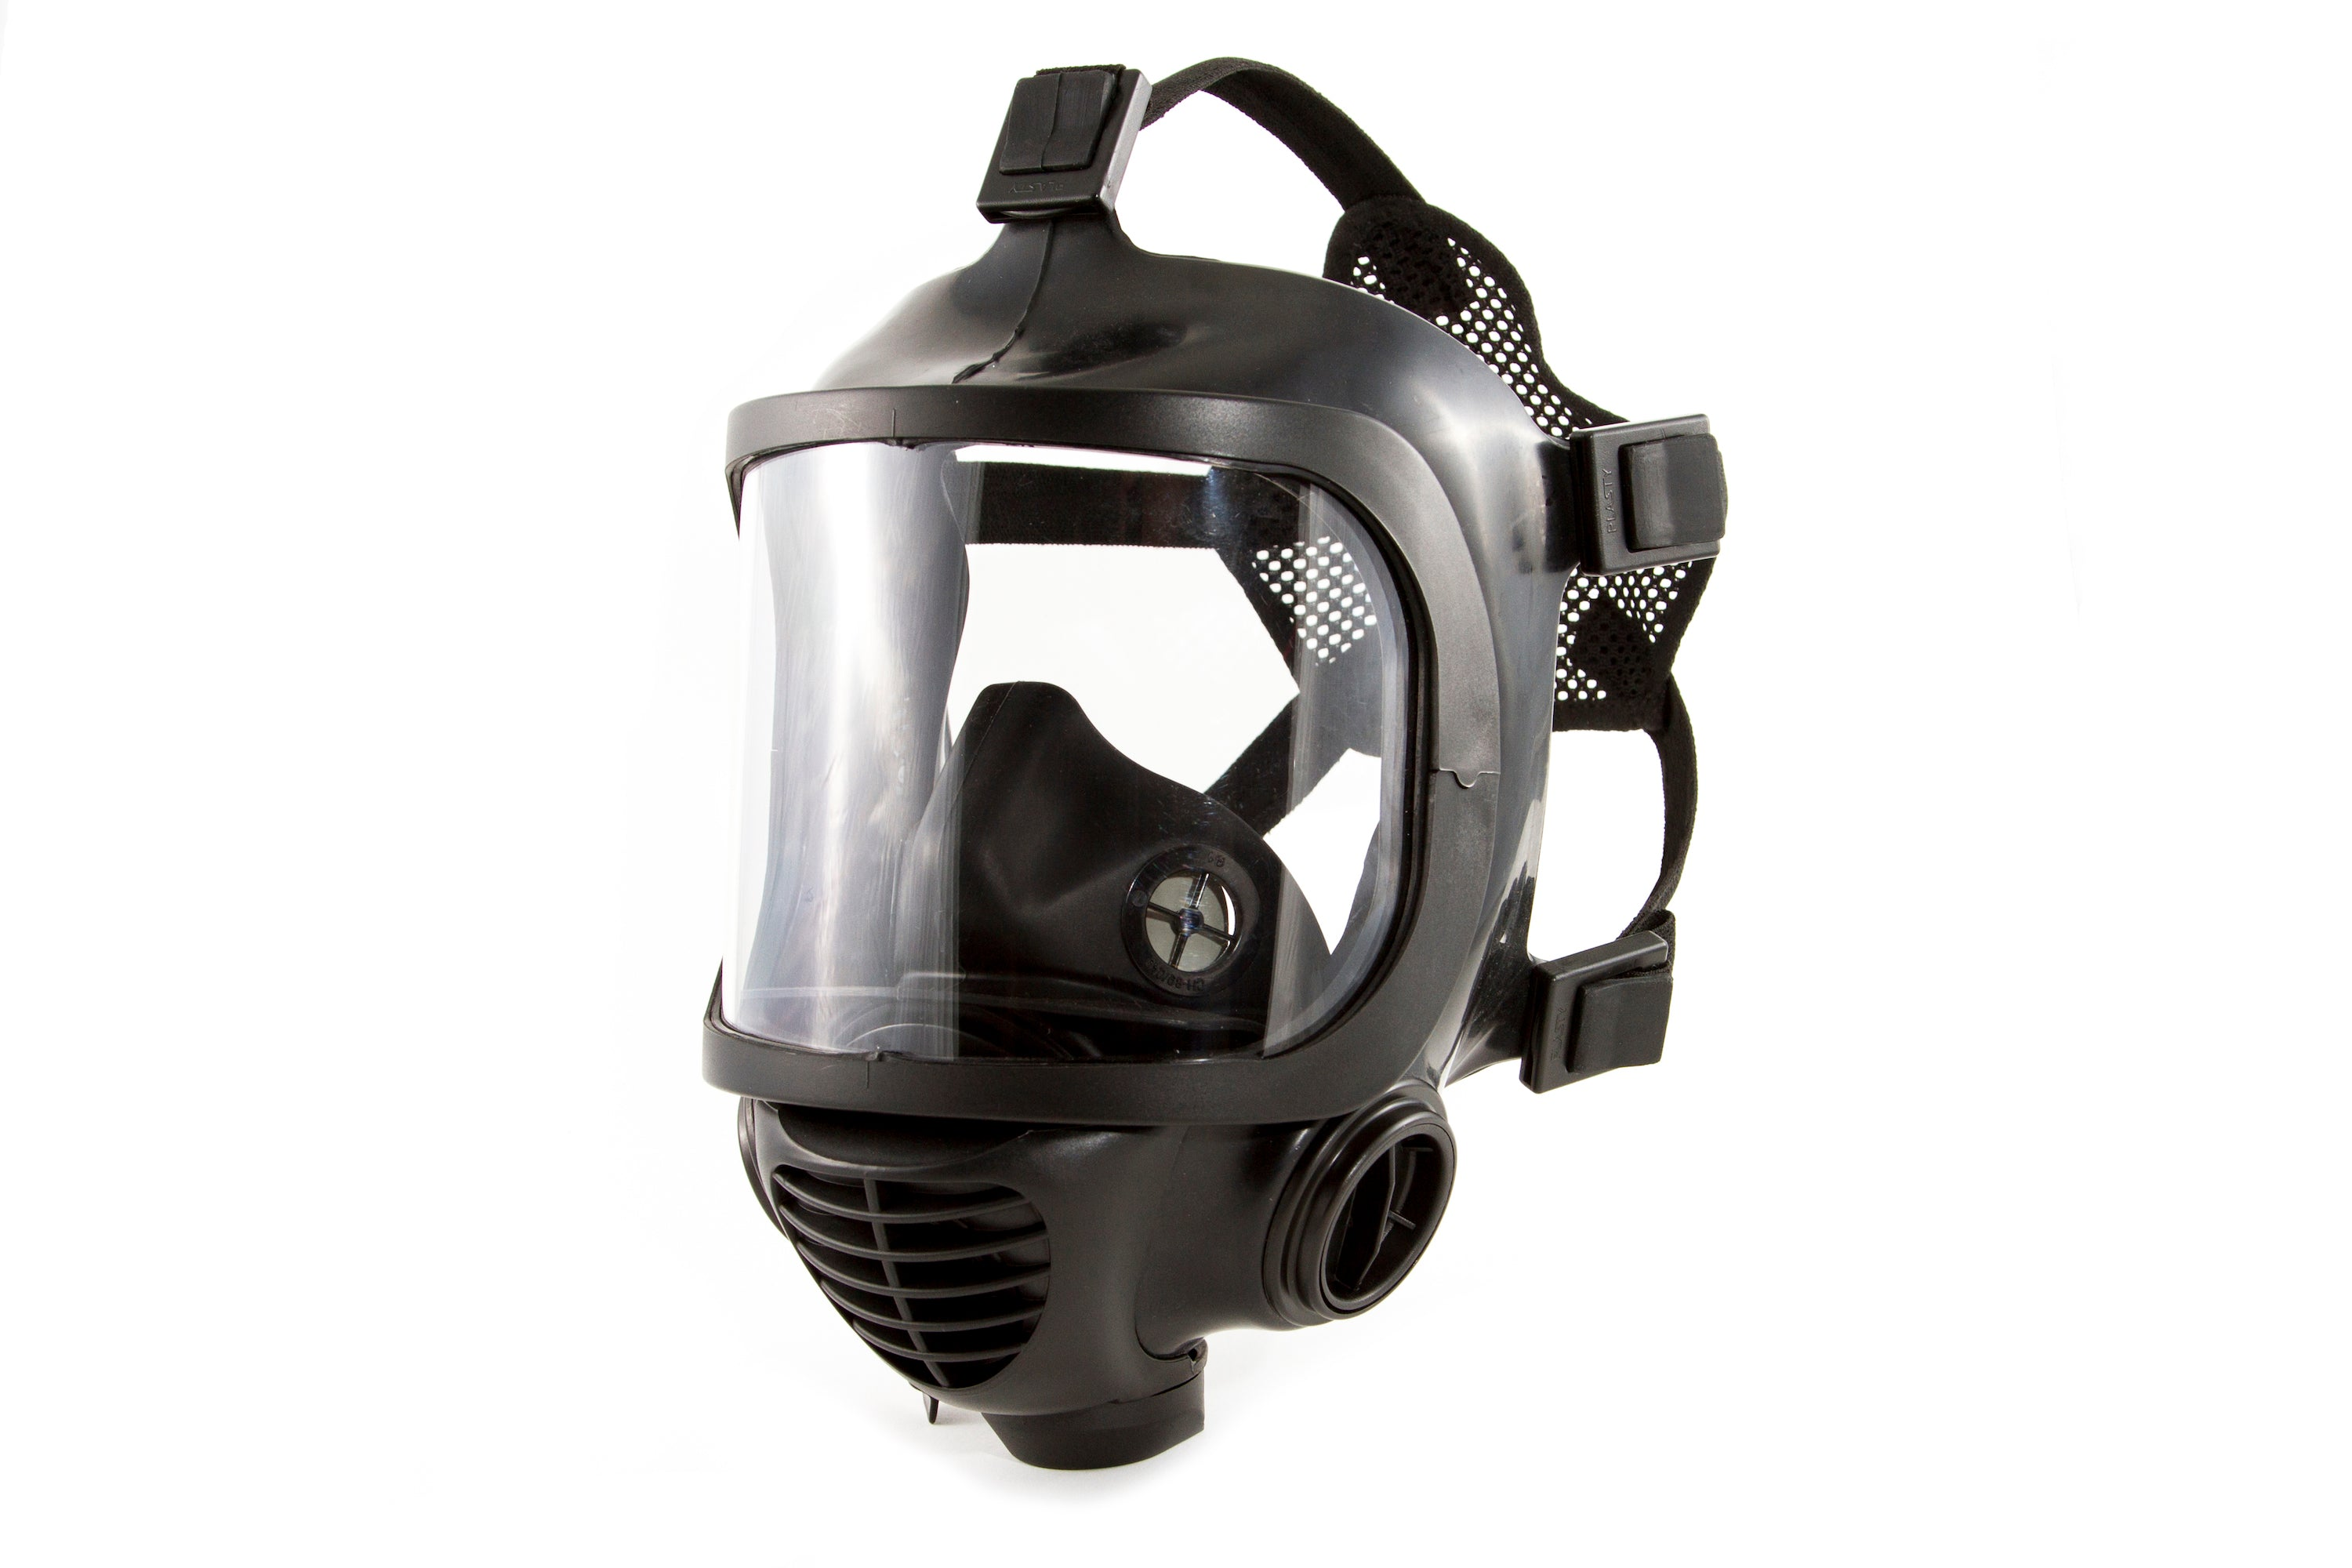 Three quarter view of the CM-6M tactical gas mask